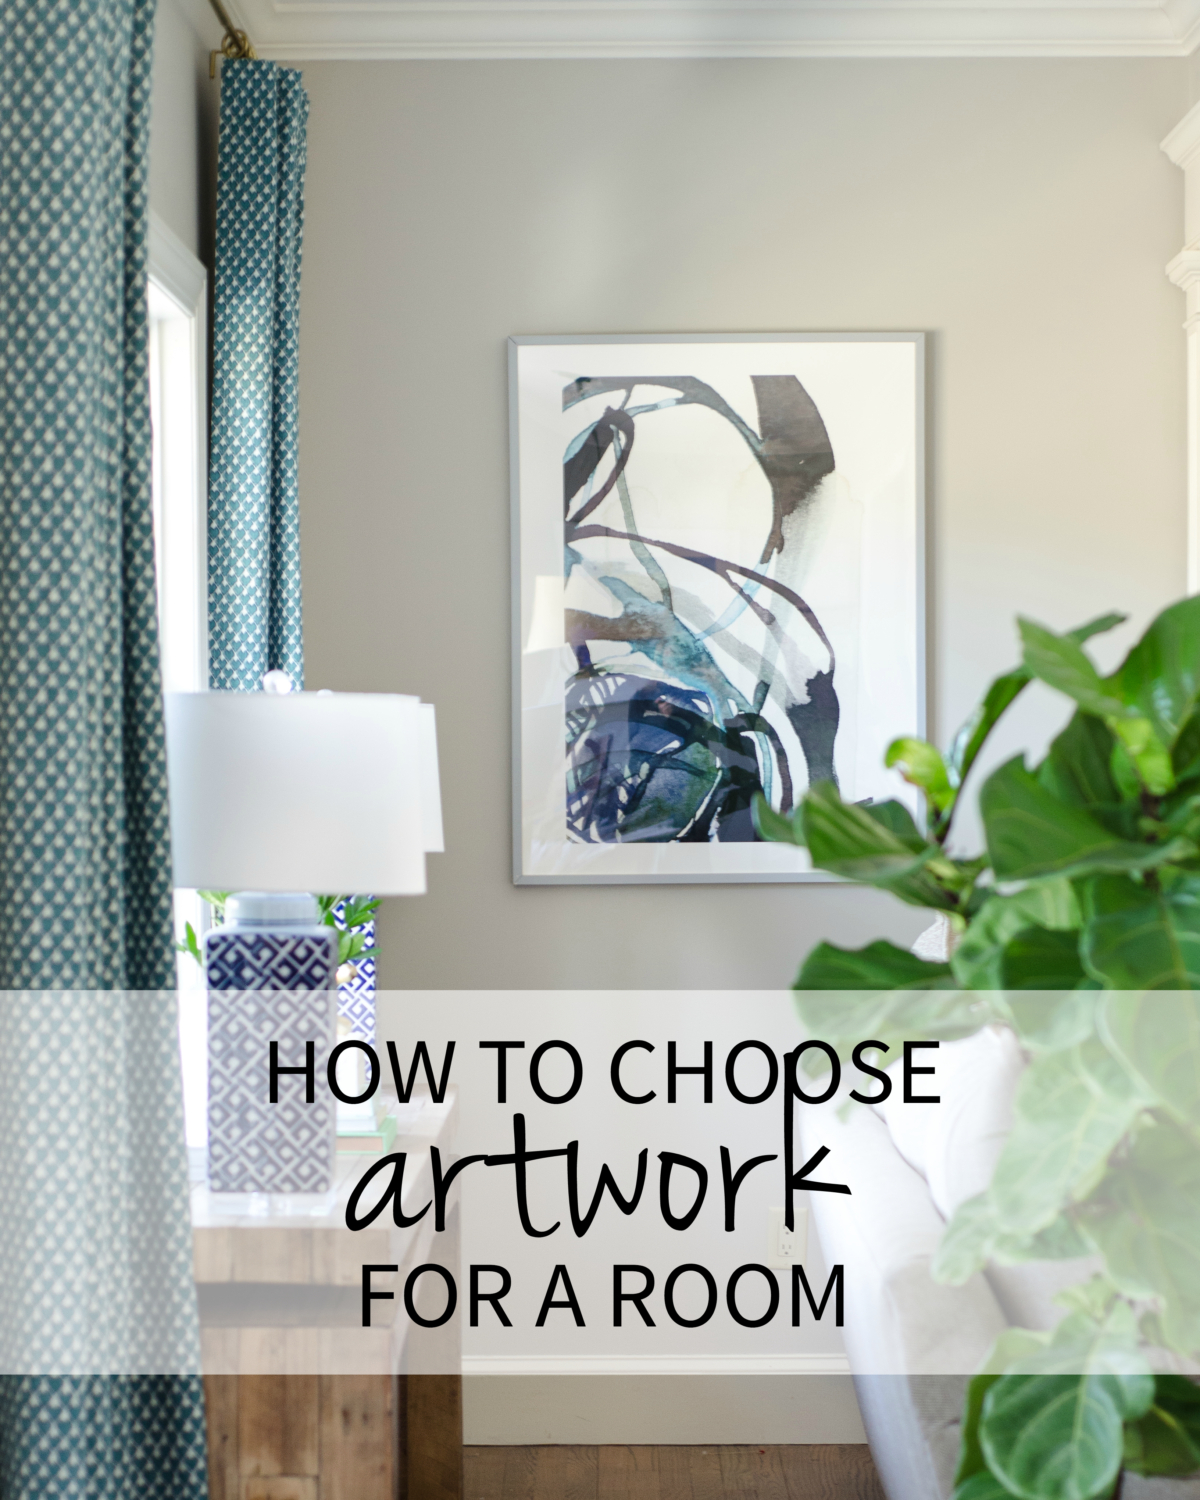 Practical and actionable tips for how to choose artwork for a room